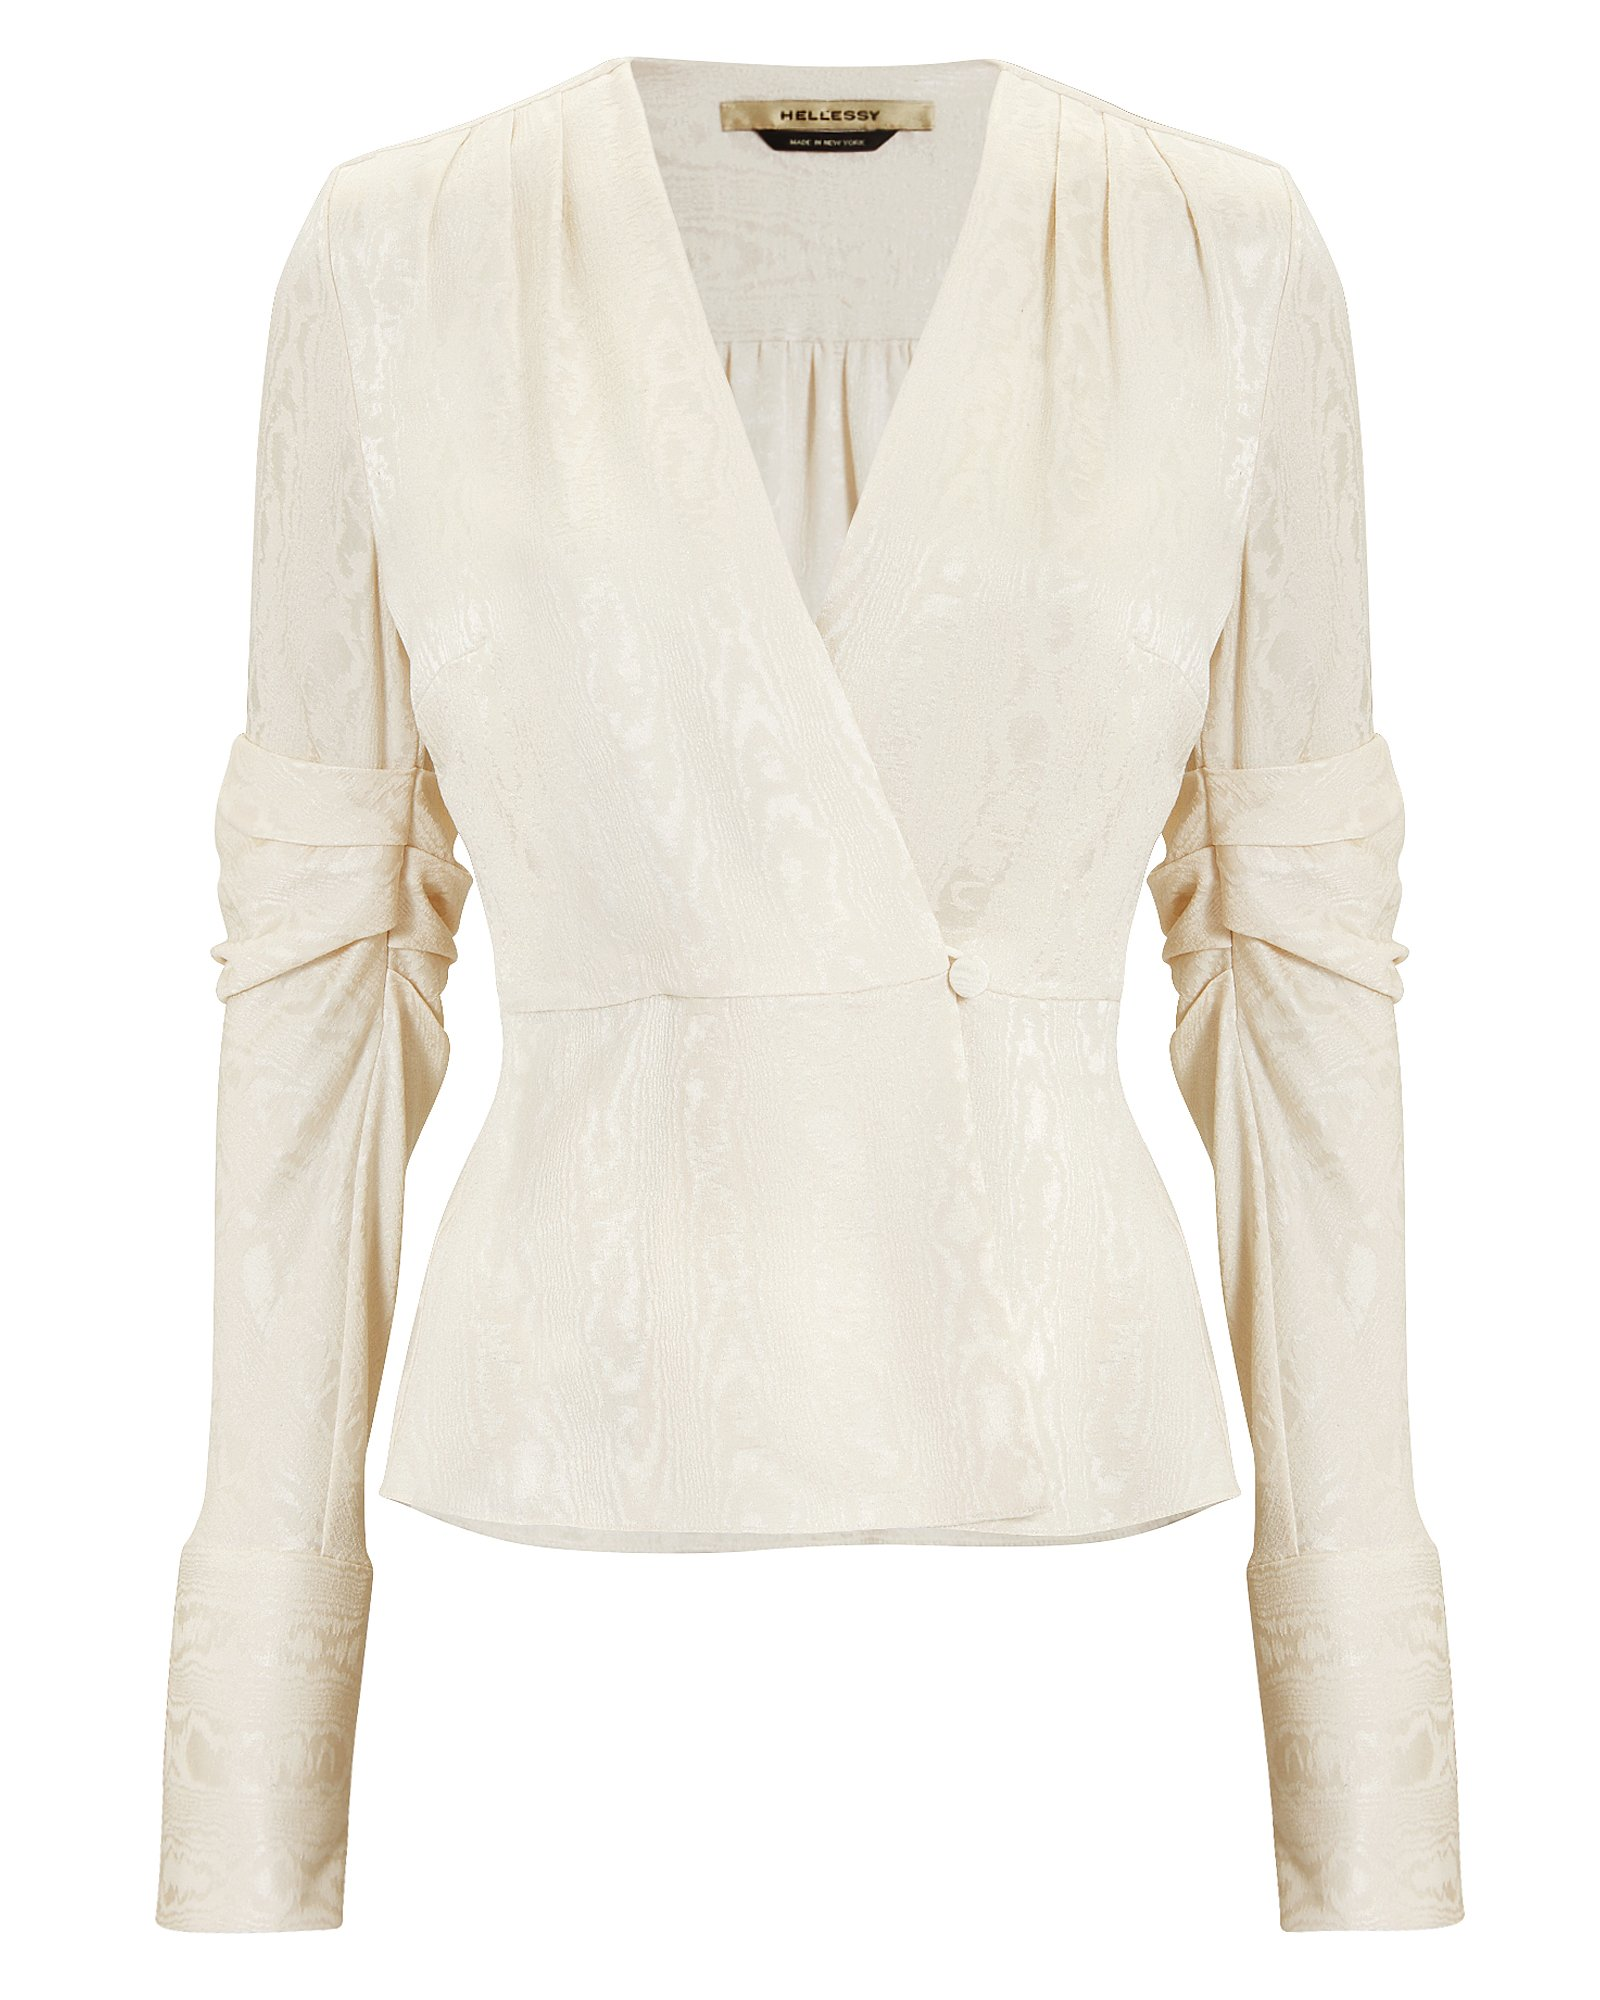 CASSIE BROCADE JACKET TOP IVORY